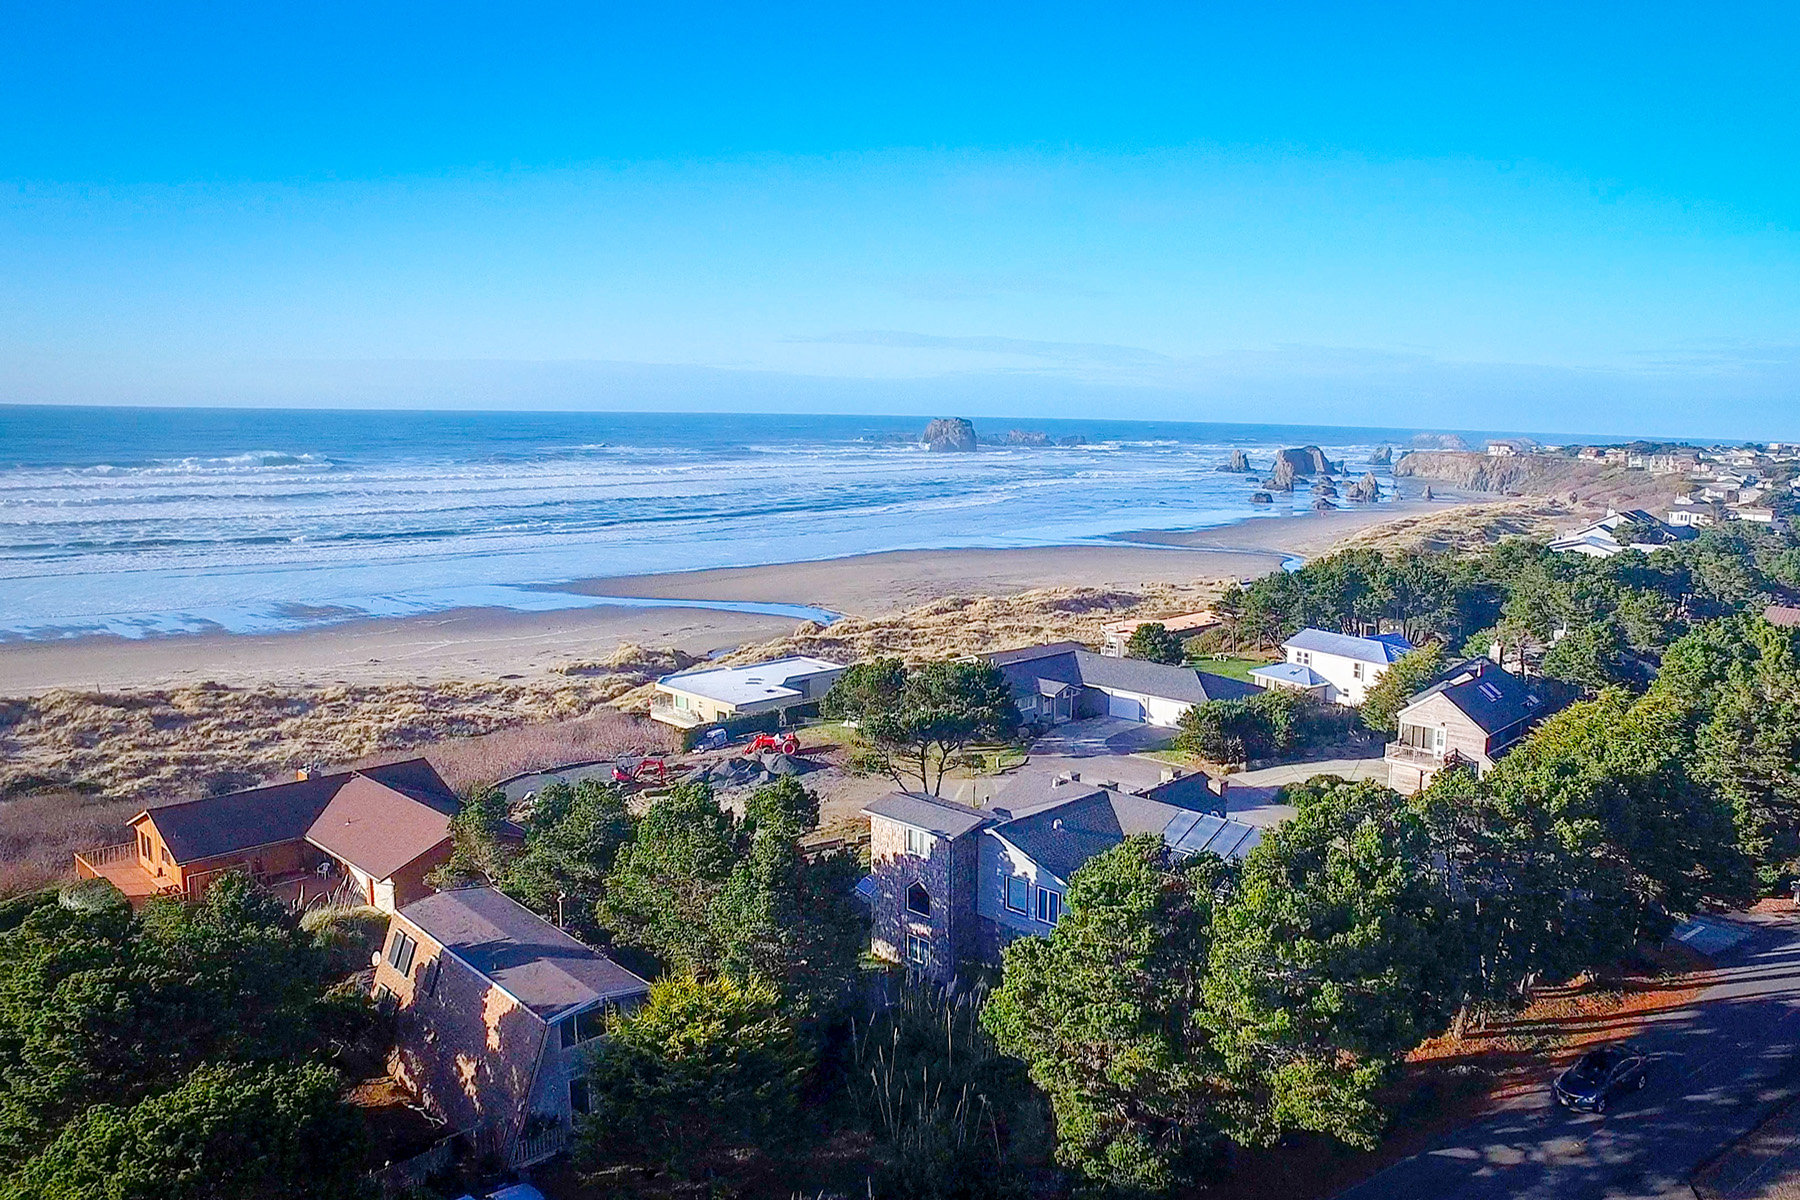 Single Family Home for Sale at Inviting Ocean View Villa 3177 Beach Loop Drive, Bandon, Oregon, 97411 United States